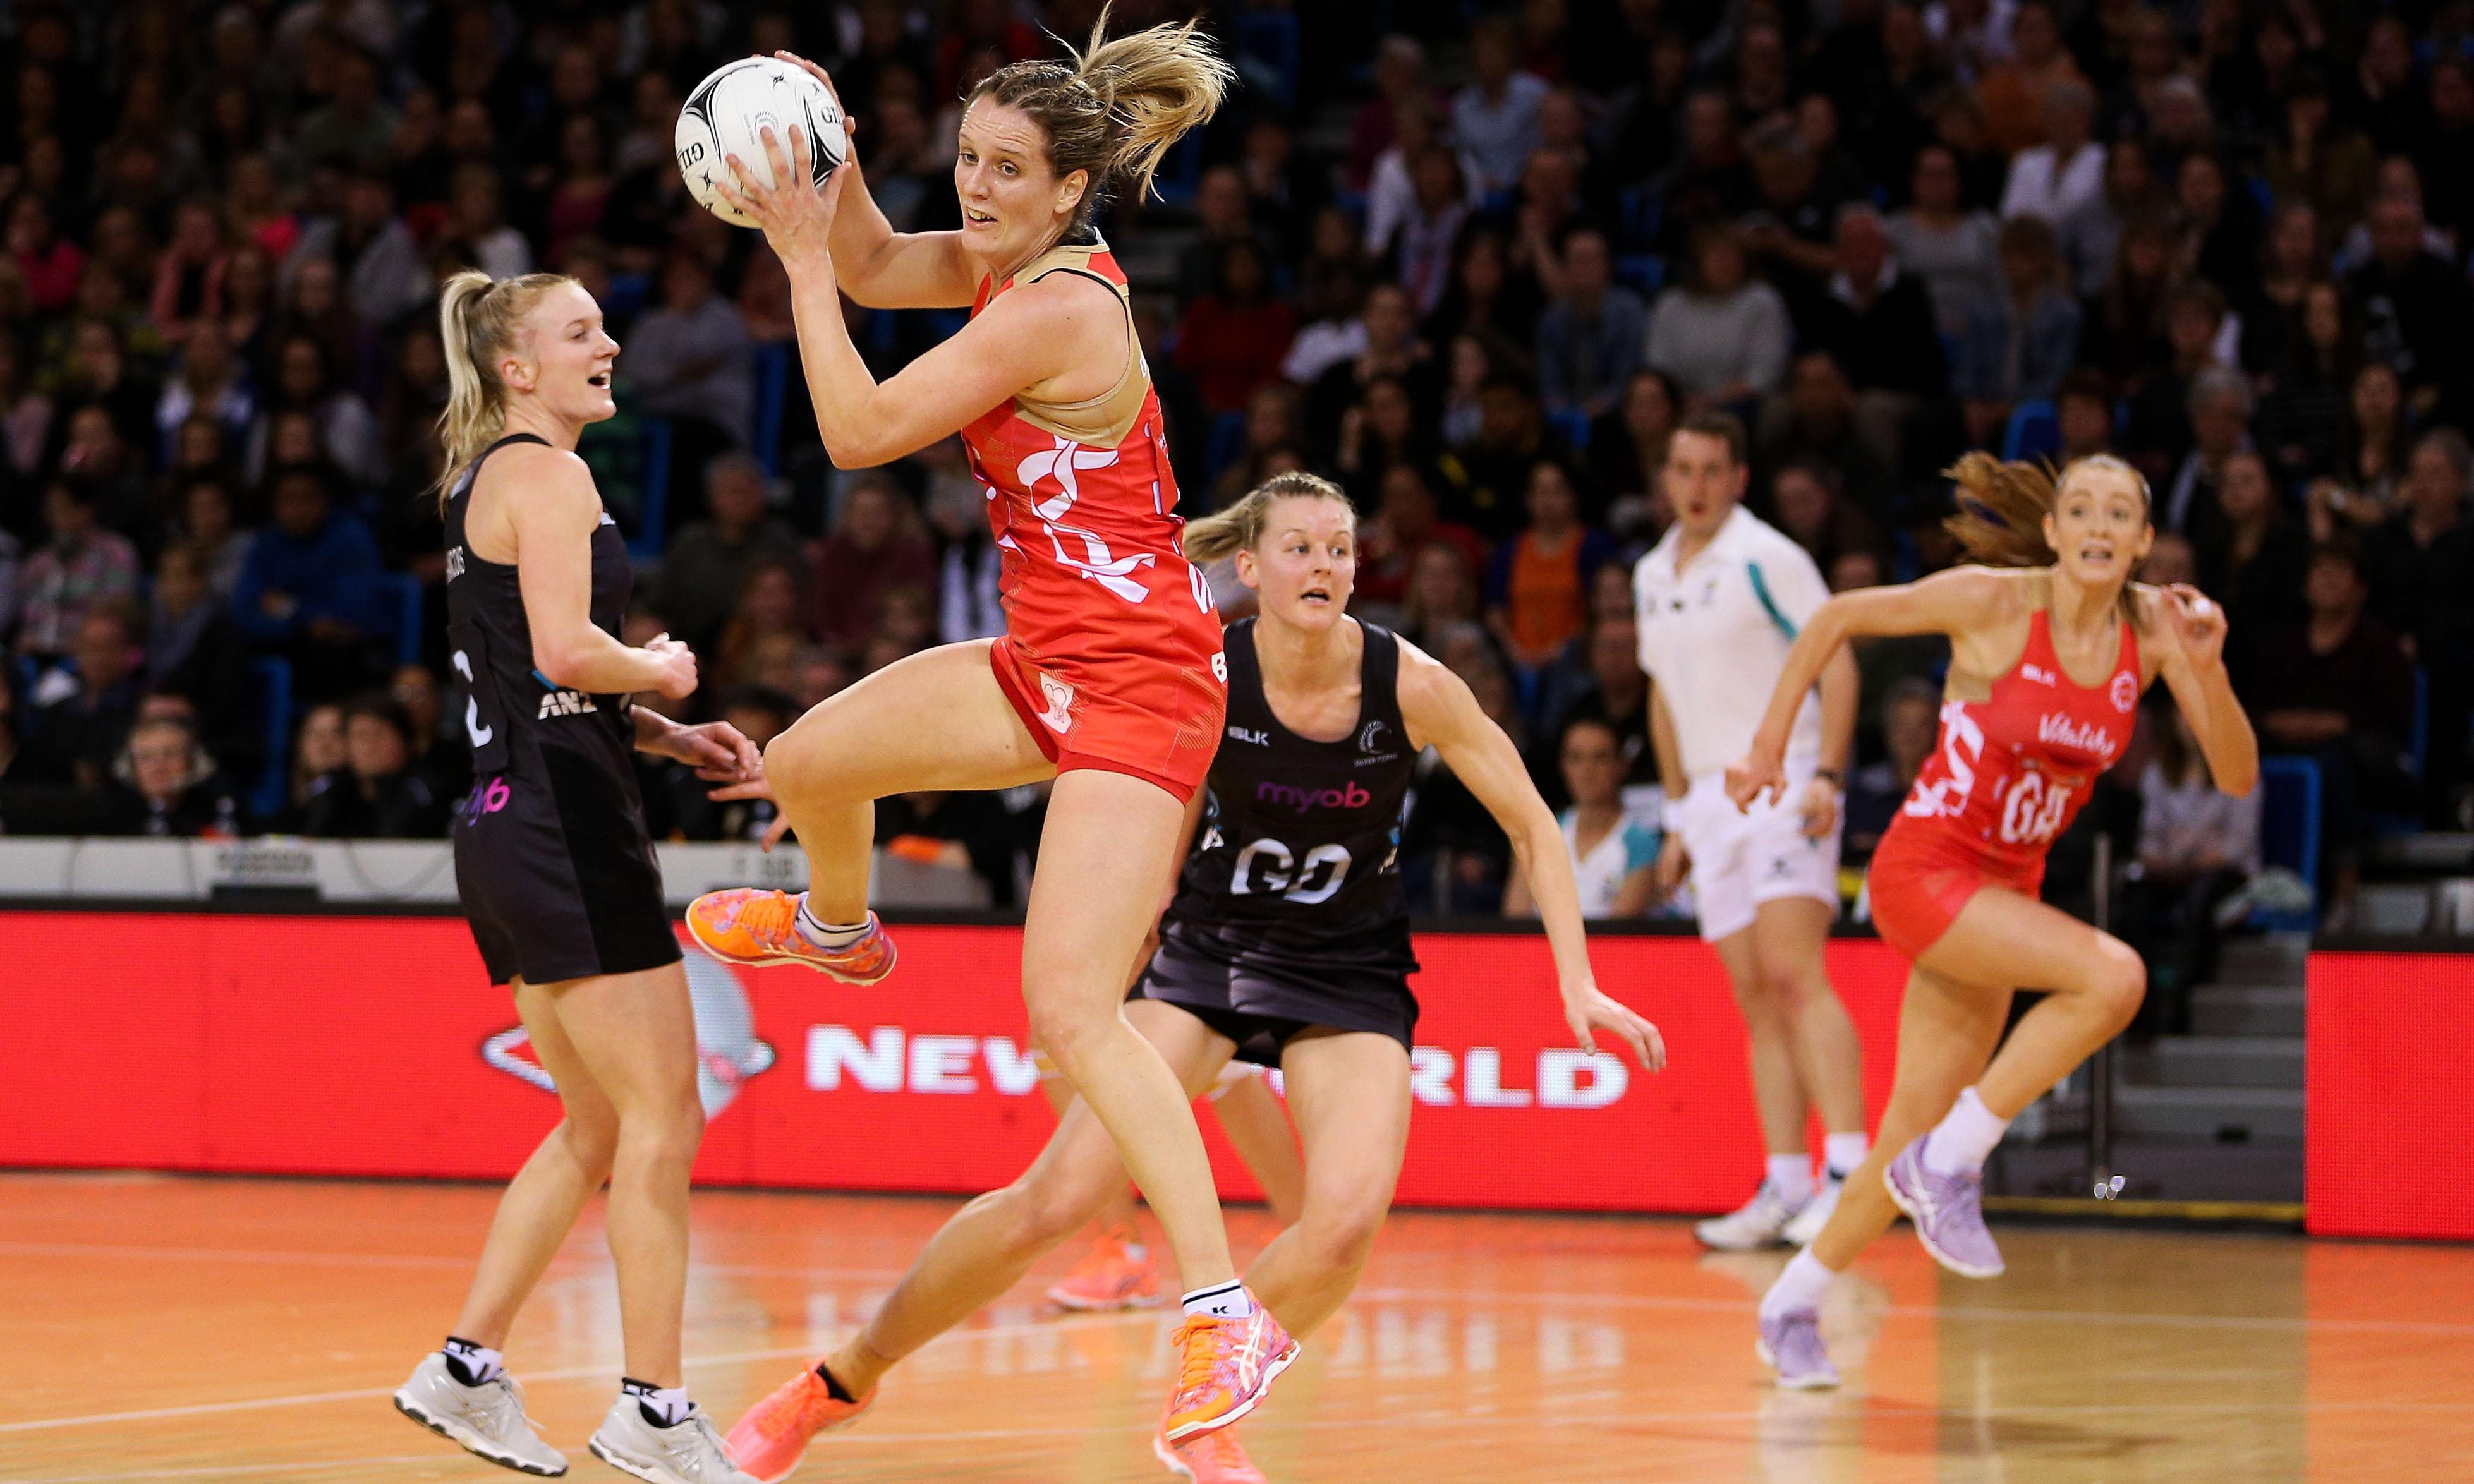 Sara Bayman: 'England's gold will be seen as the pivotal moment for netball'